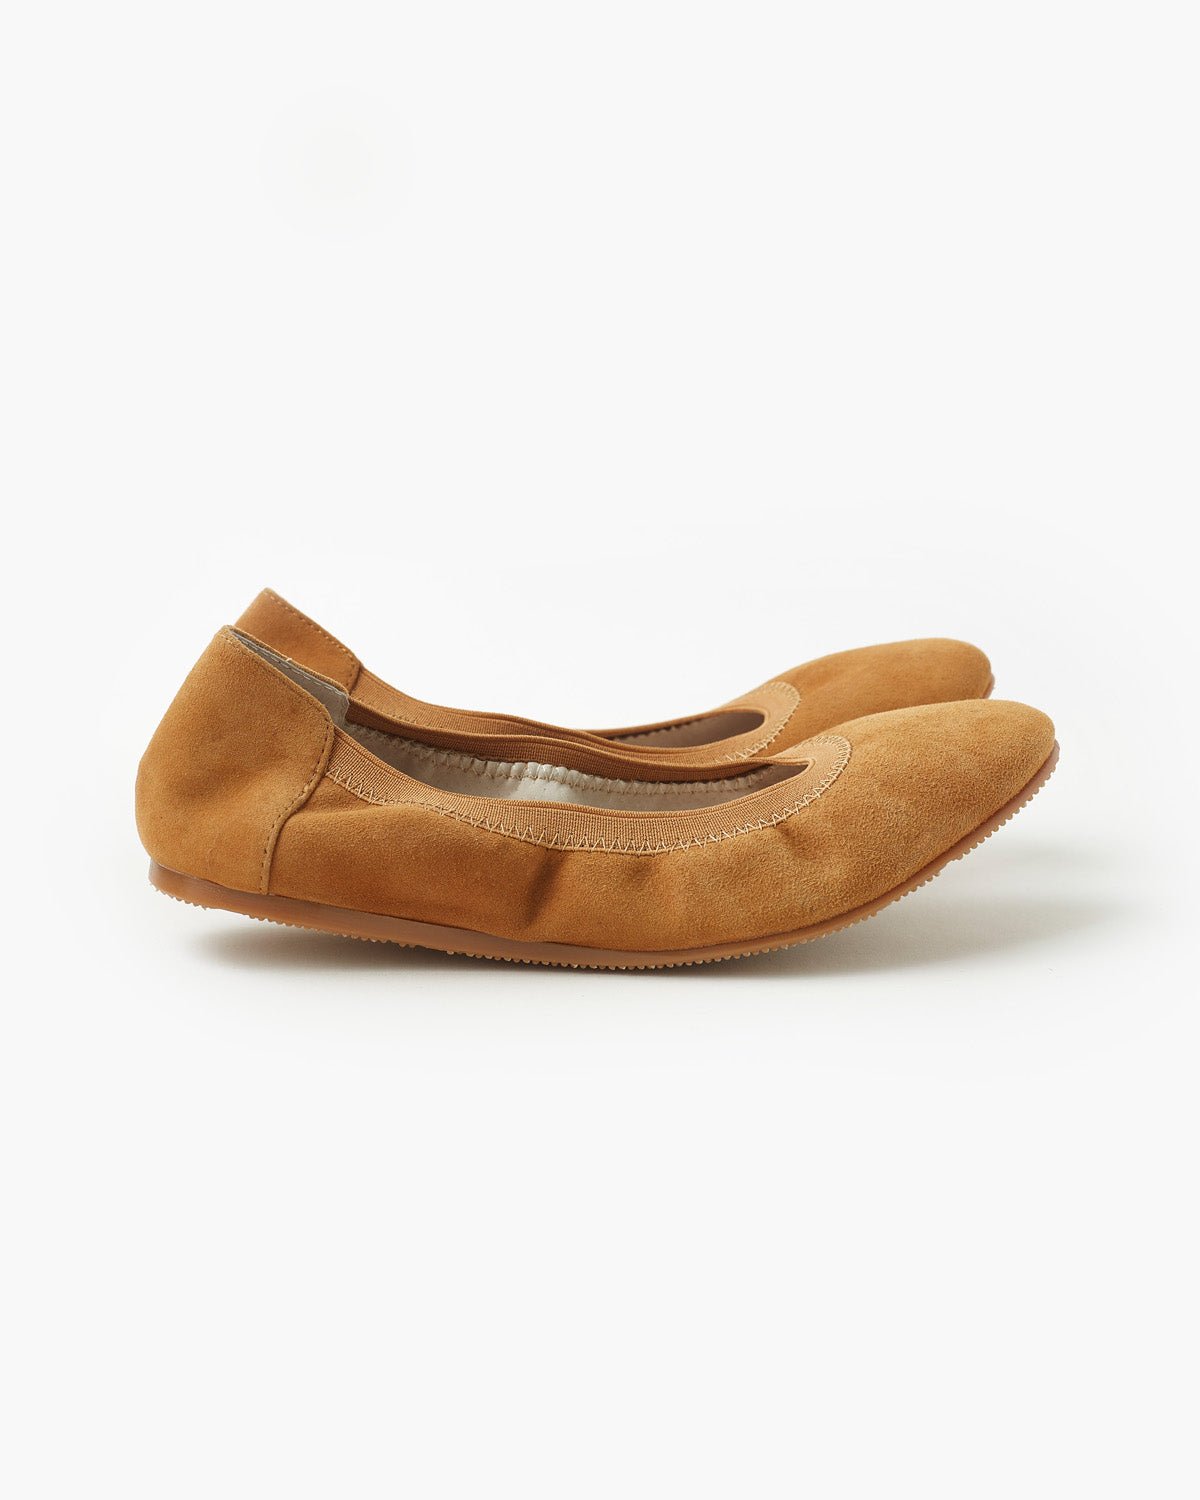 Ava Leather Ballet Flat - Tan Suede